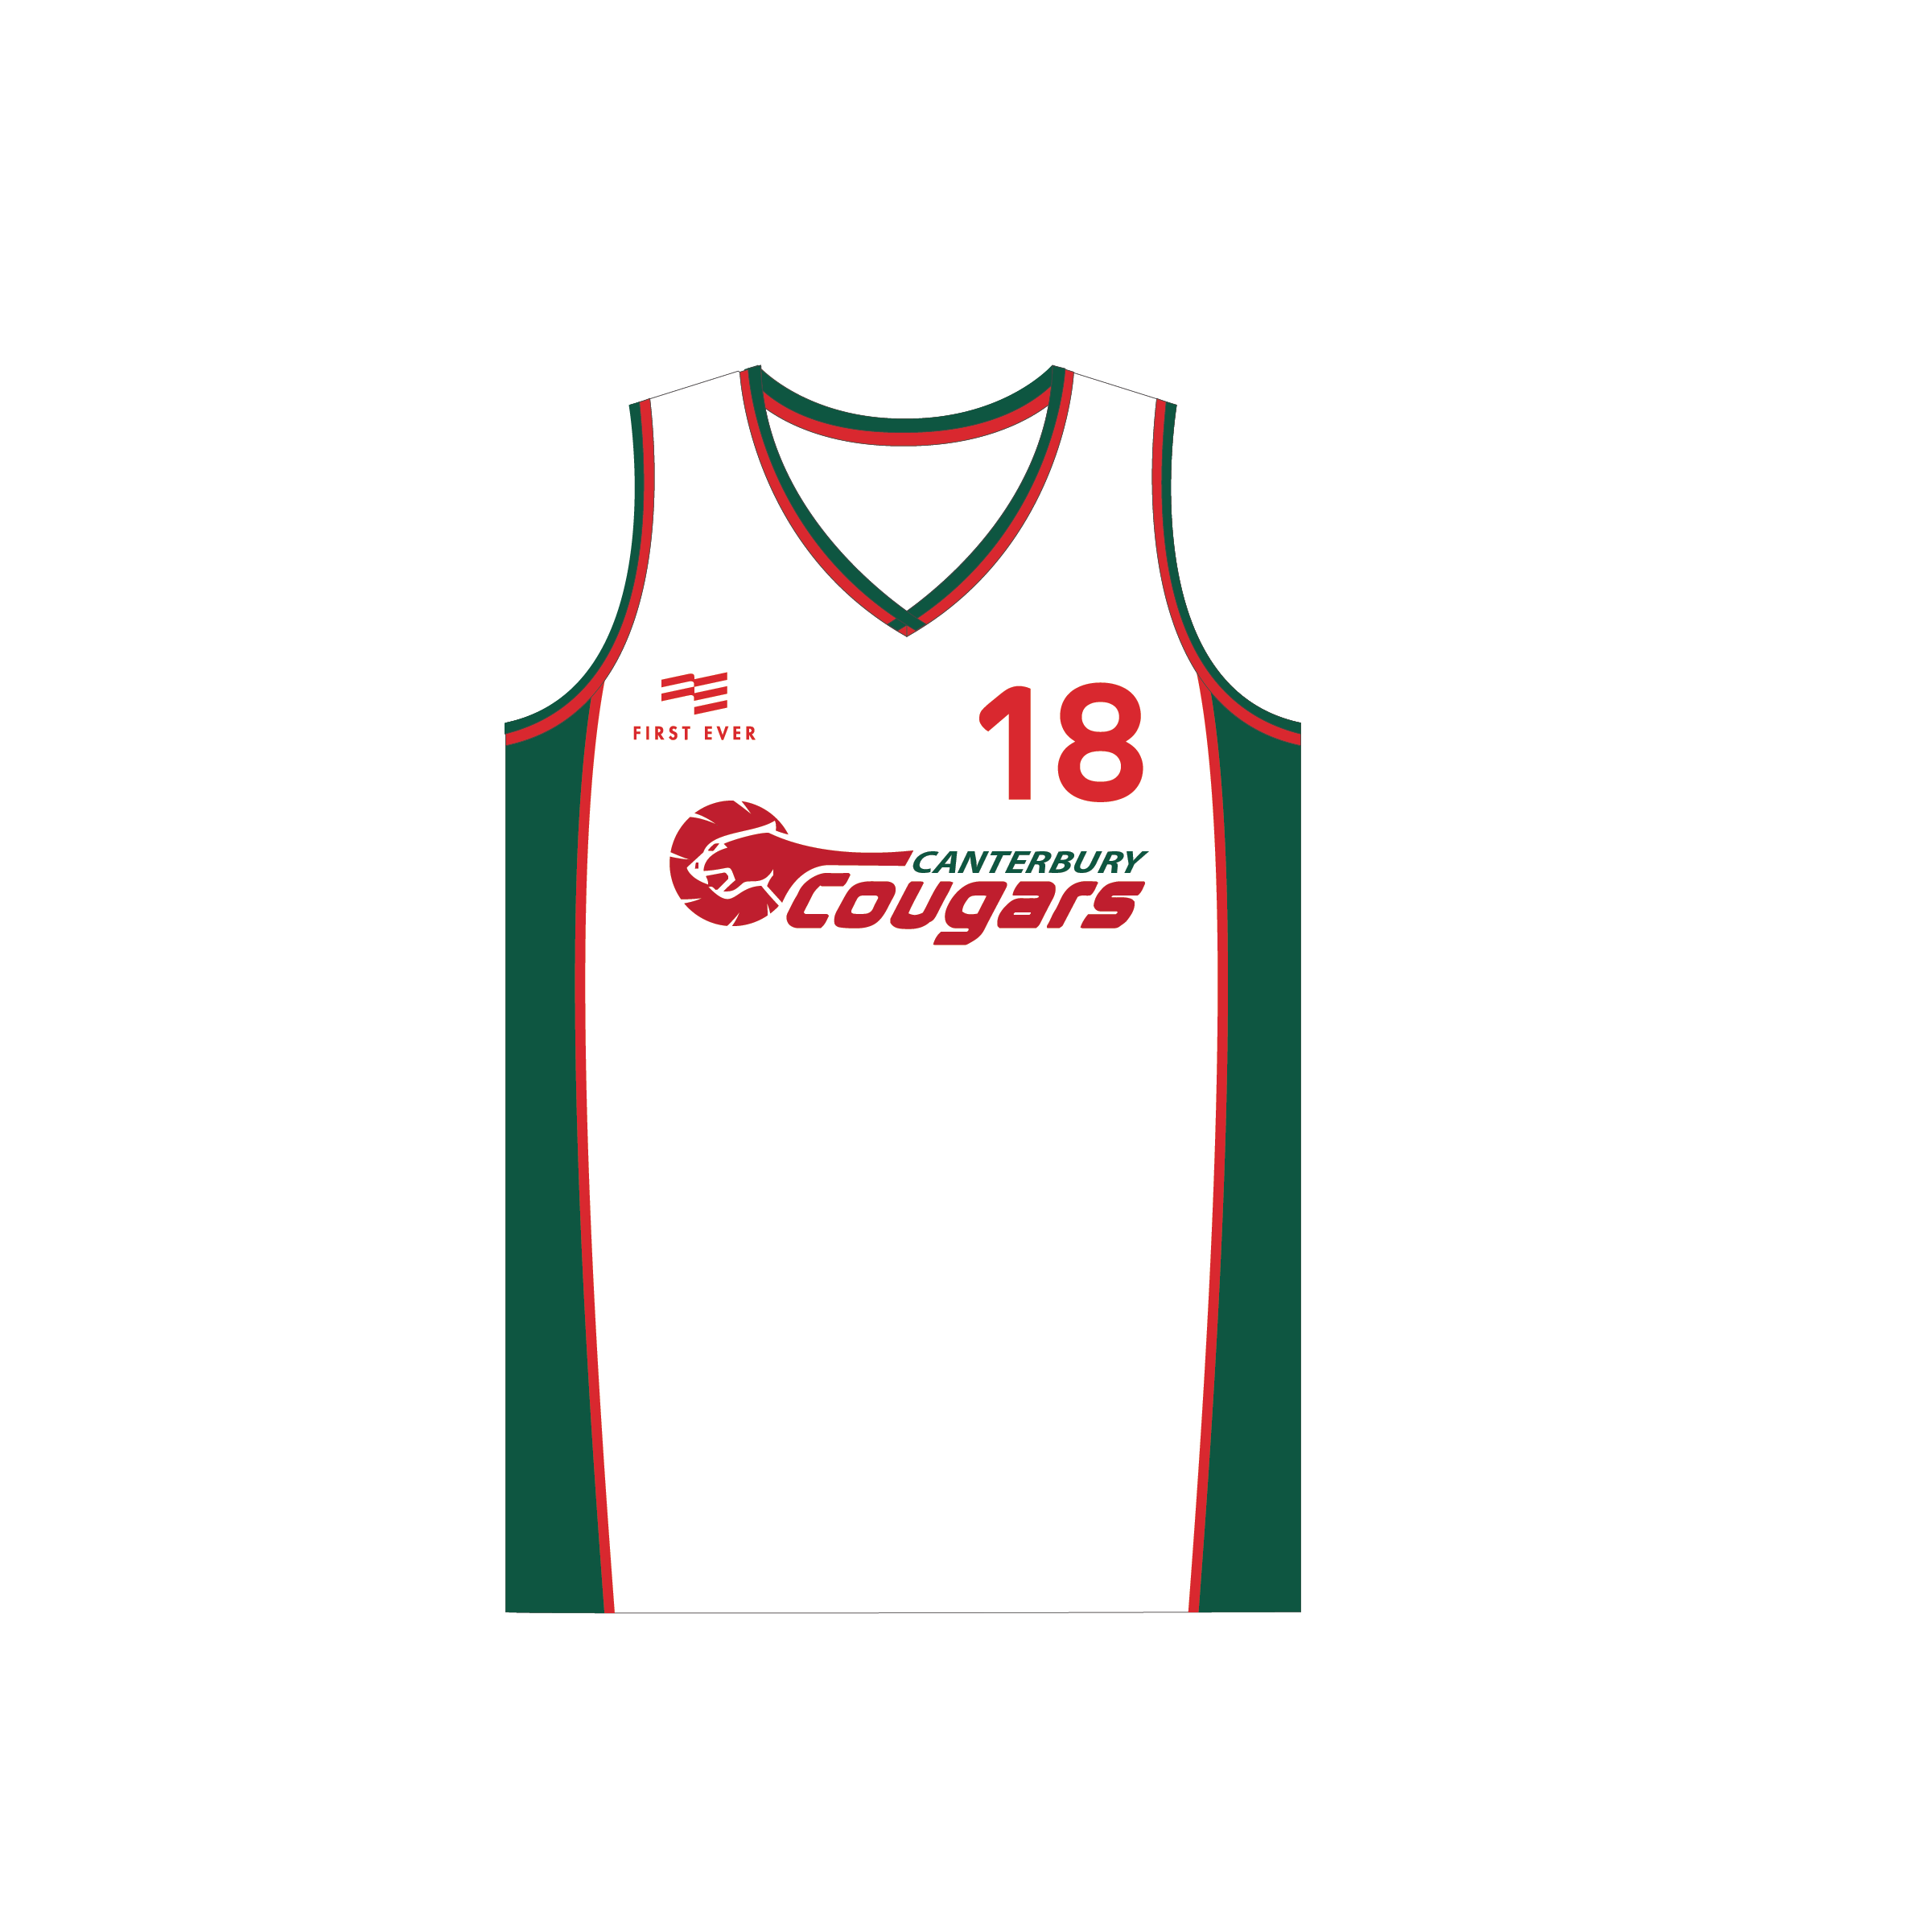 Canterbury Cougars Playing Kit